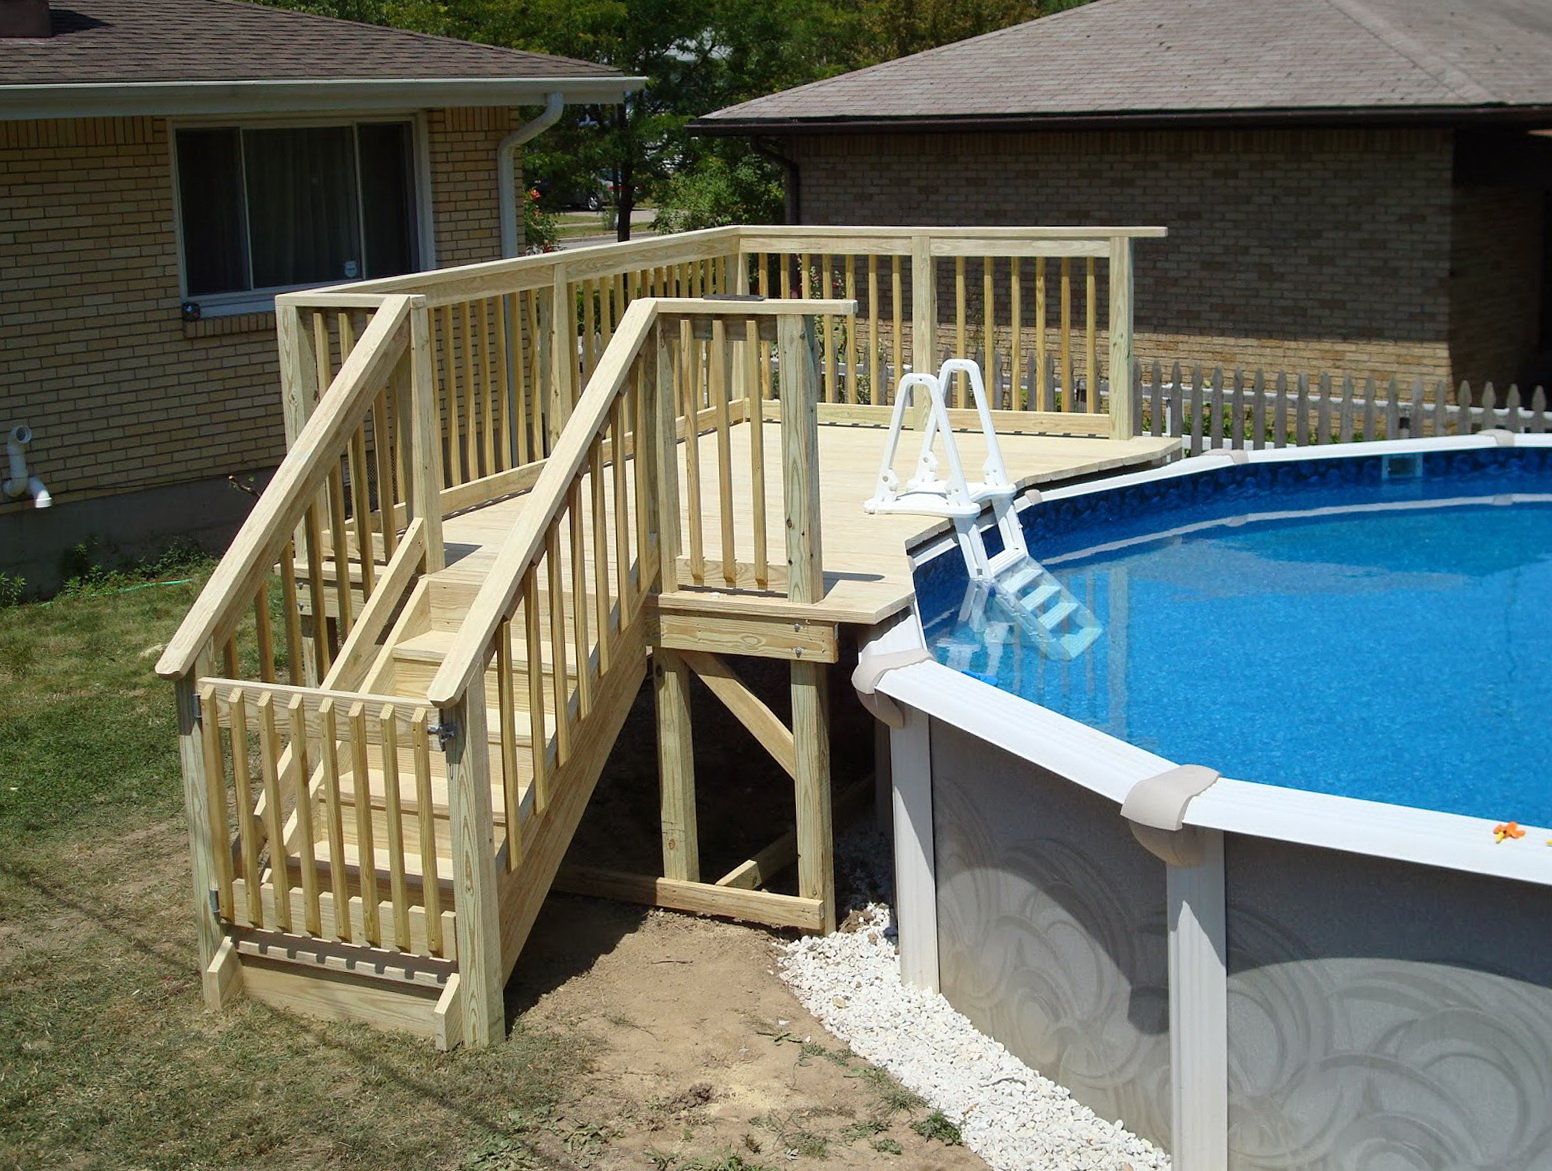 Small deck plans for above ground pools home design ideas - How to build an above ground swimming pool ...